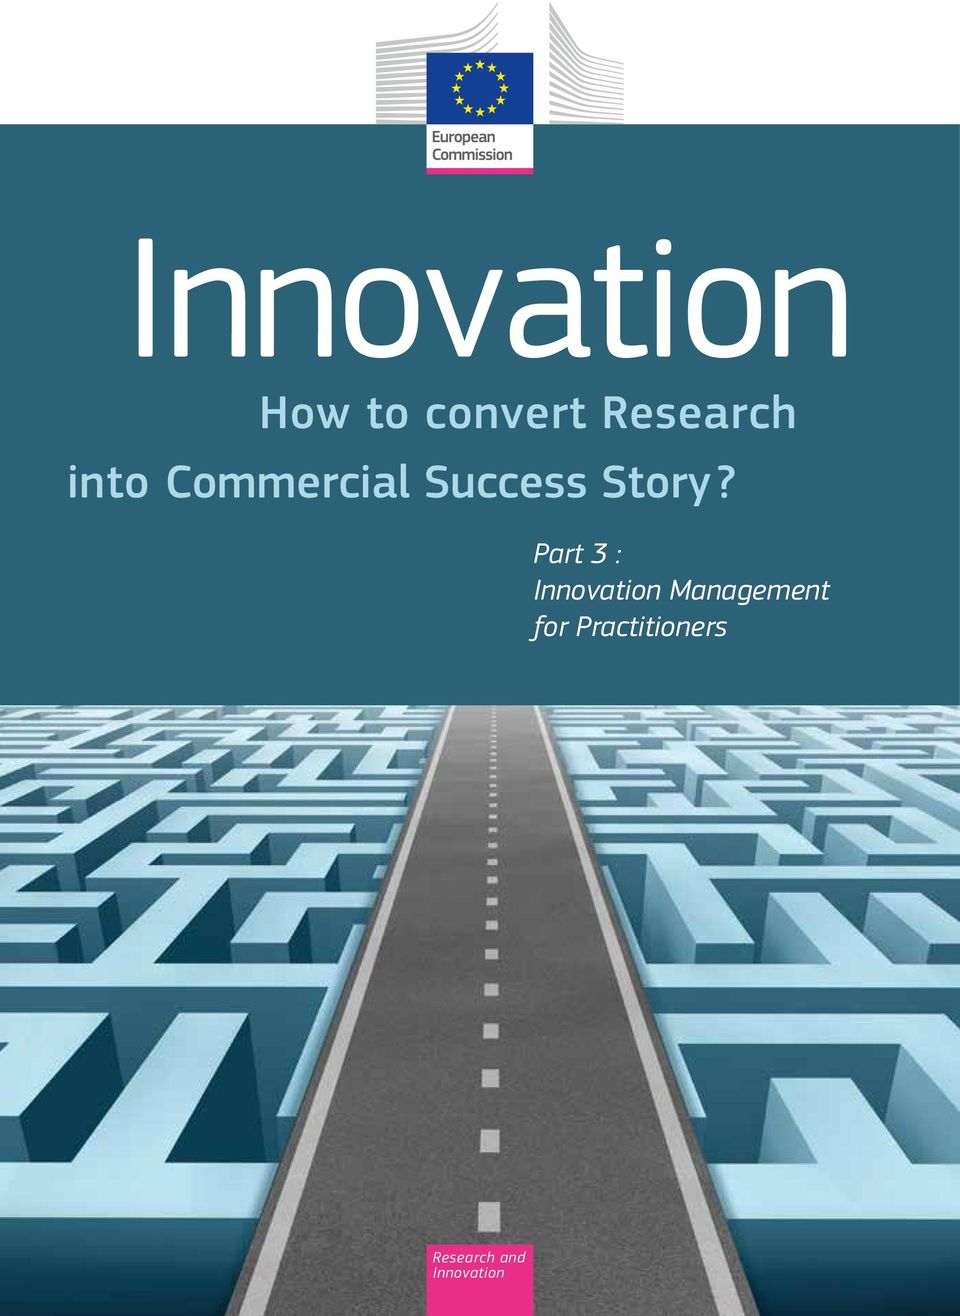 Part 3 : Innovation Management for